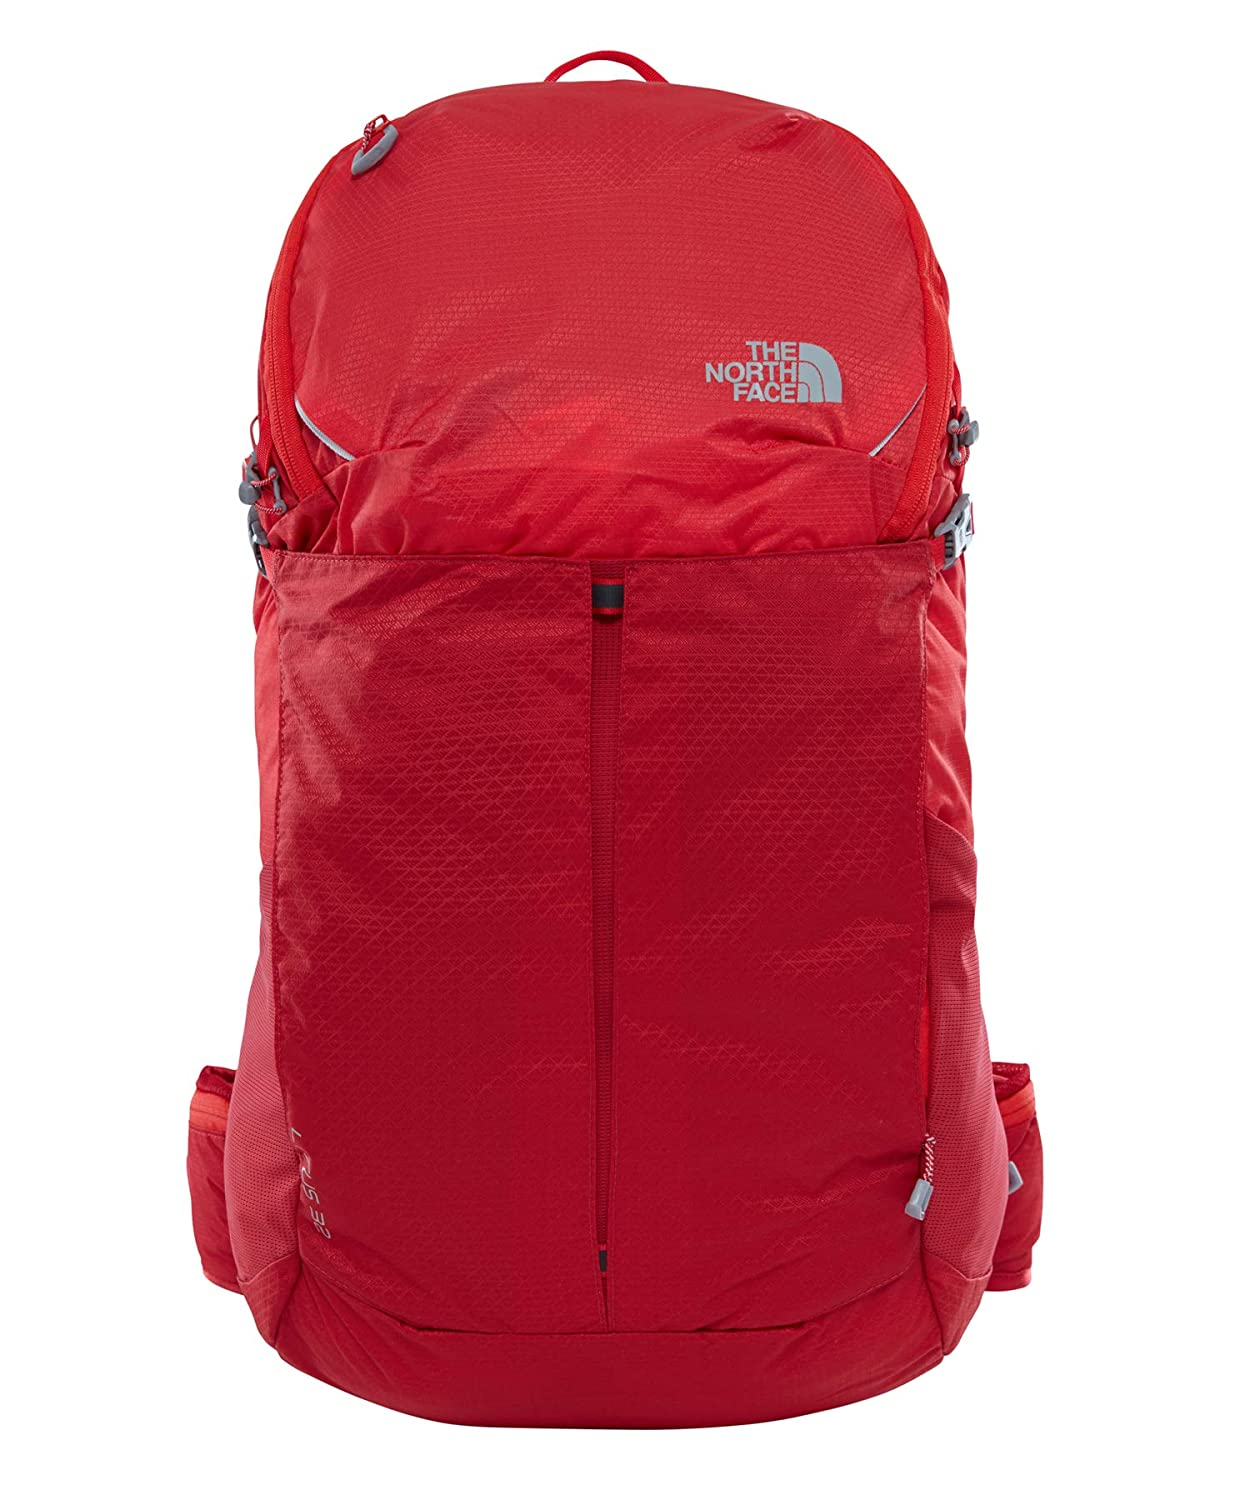 THE NORTH FACE t92zdy1sw Rucksack Unisex